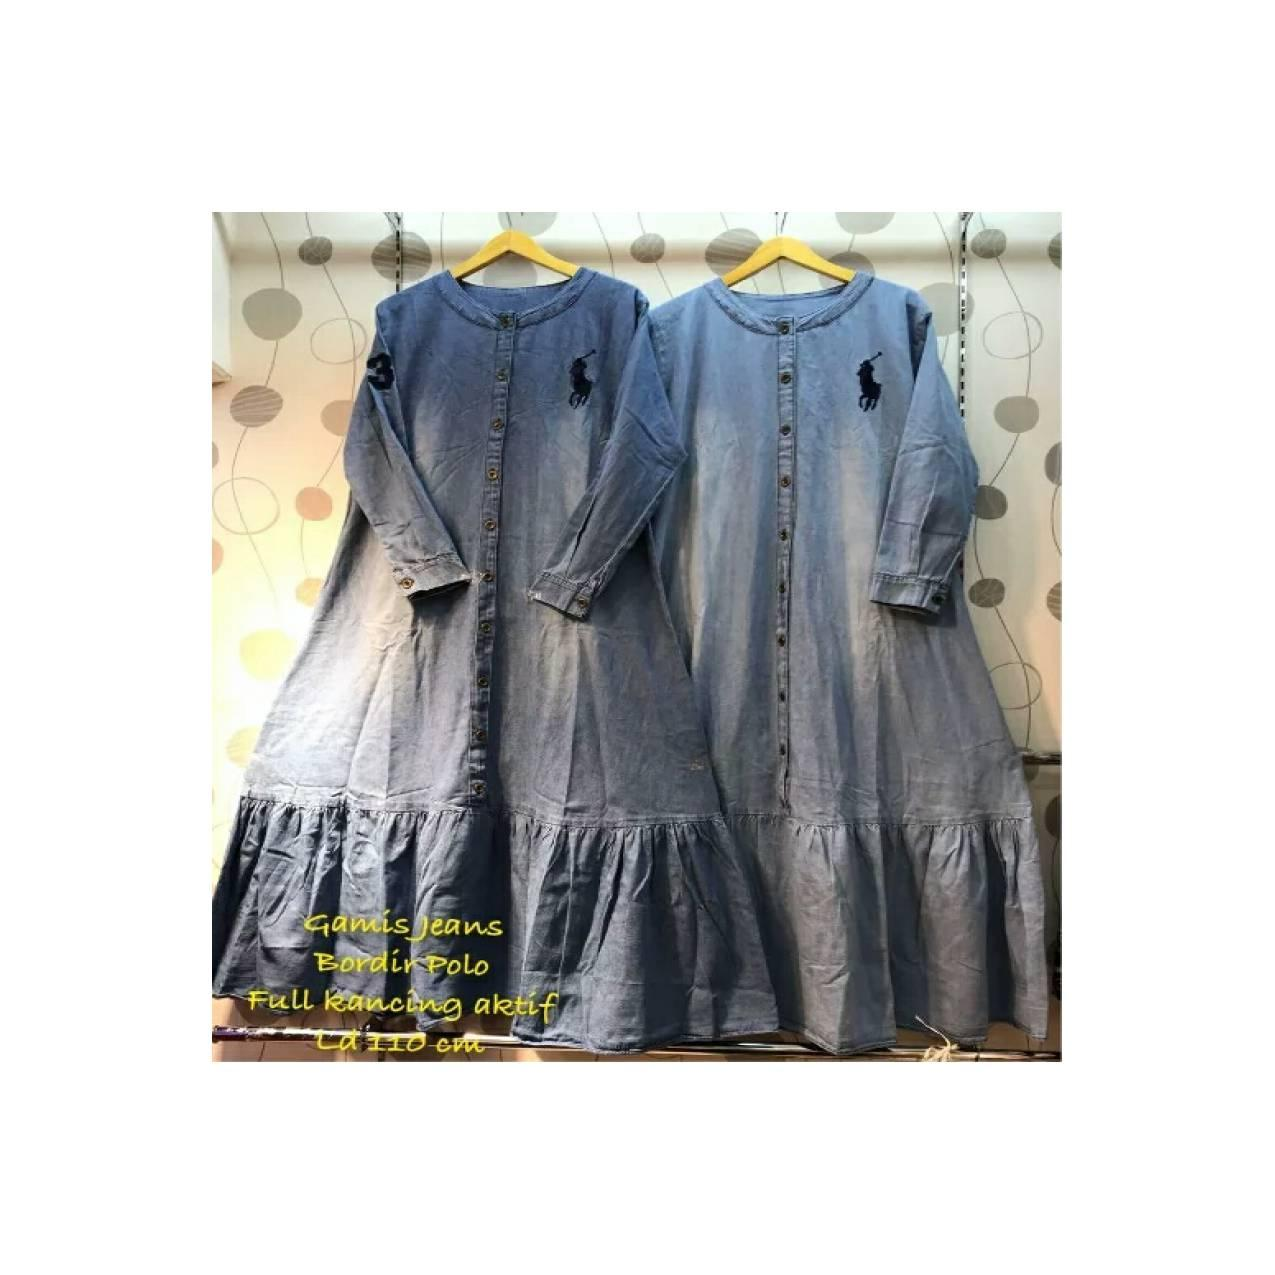 Gamis levis polo